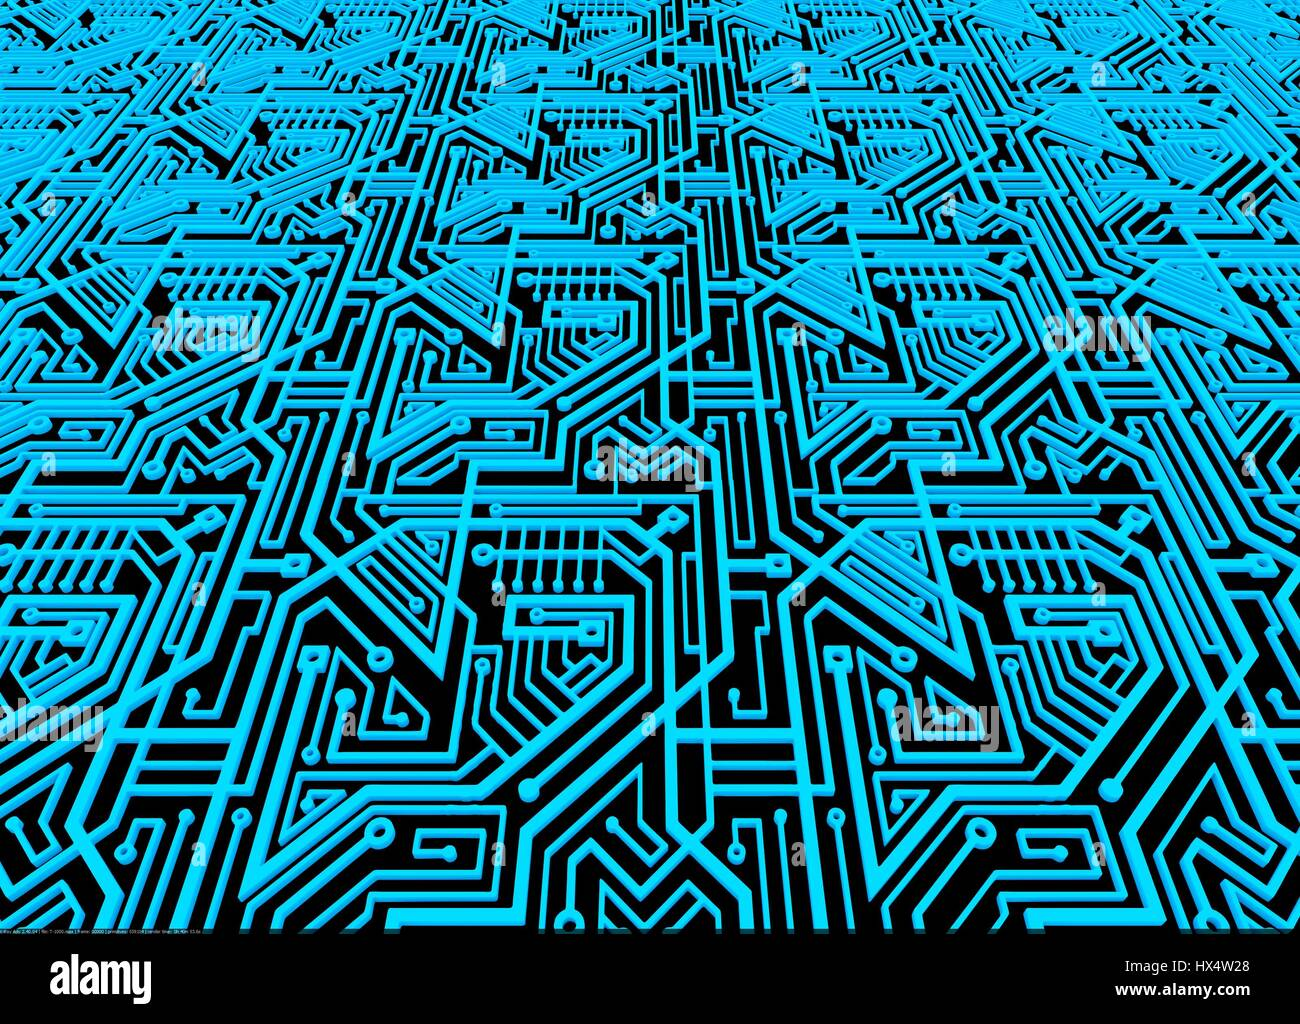 computer circuit board background